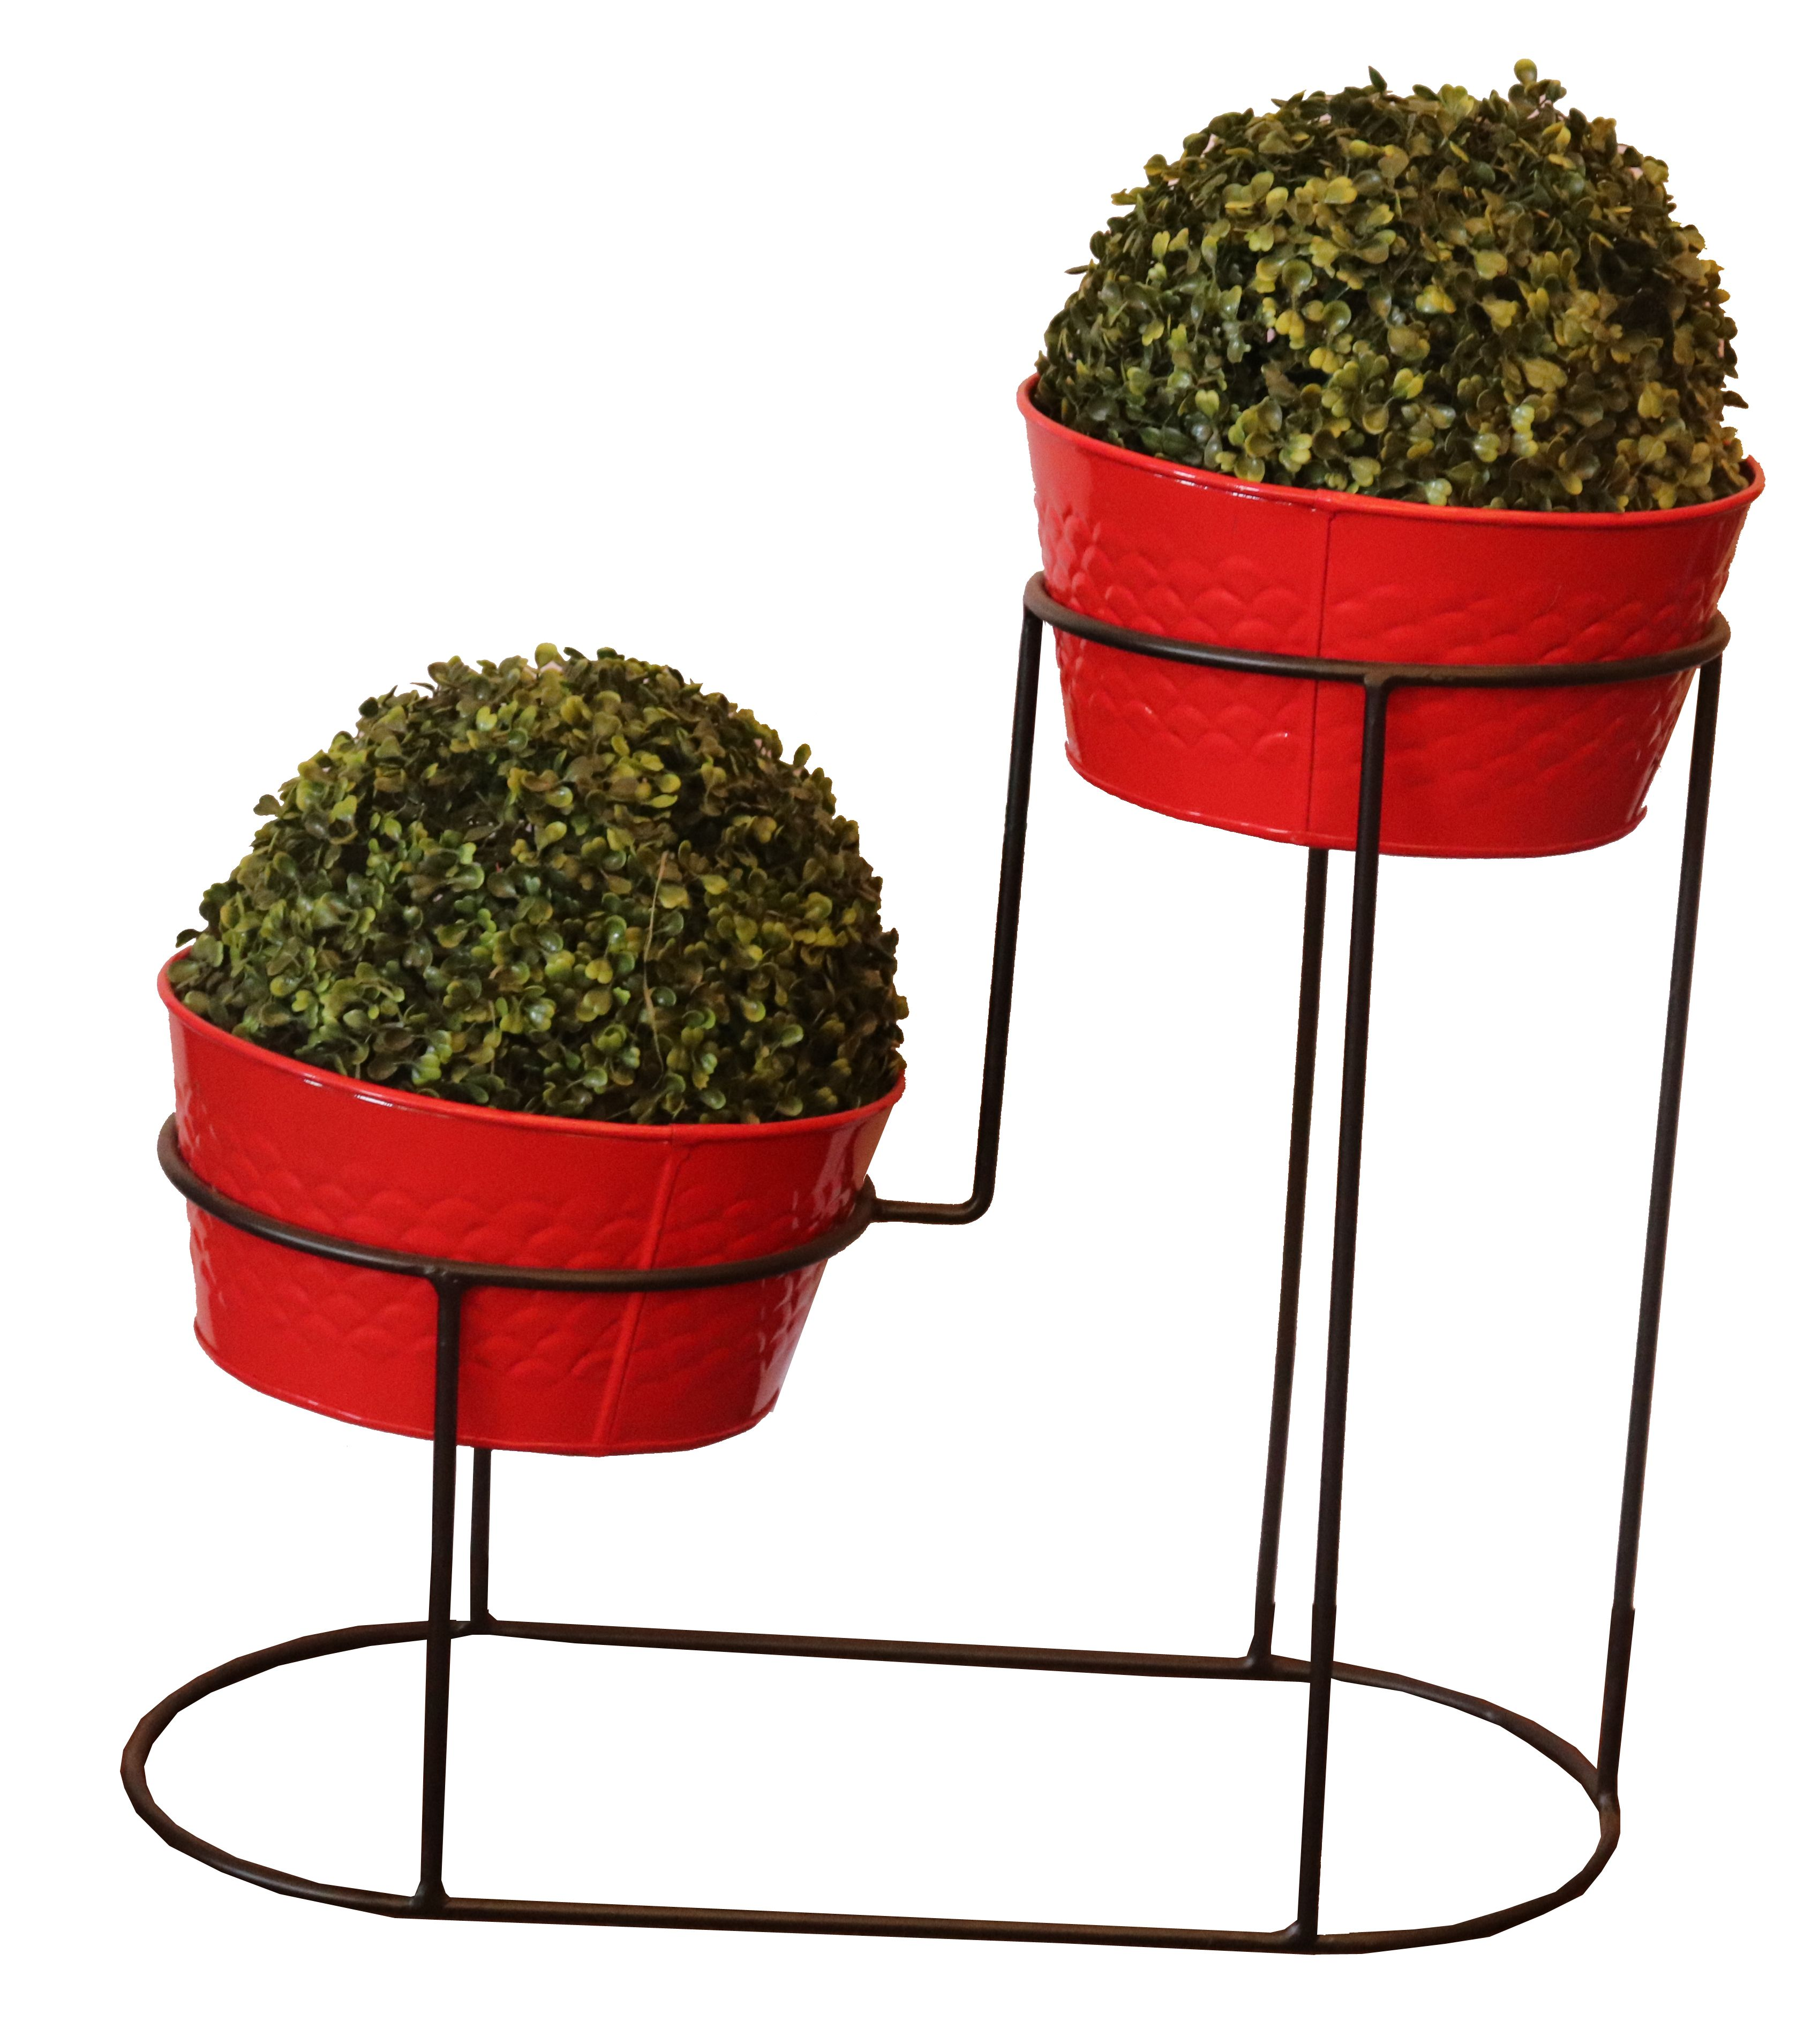 Planter Stand Size Height 20 Inch Width 23 Inch Pot Size Height 10 Inch Width 10 Inch Color Red Tank Powde Plant Decor Indoor Planter Stand Outdoor Planters